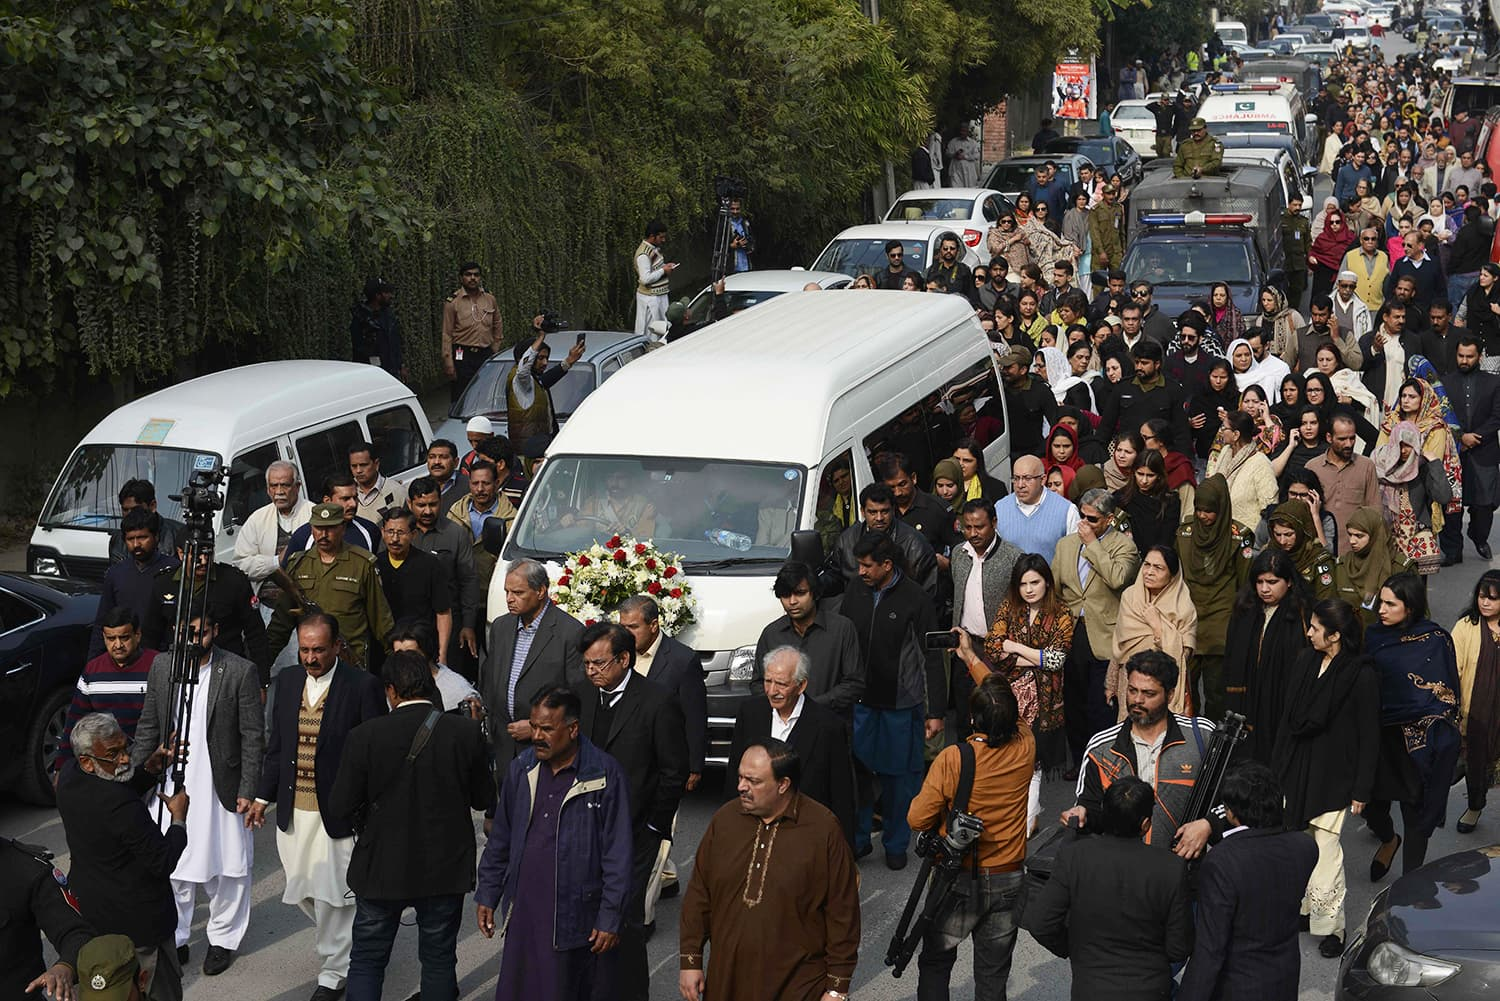 Mourners march alongside a vehicle carrying the coffin of lawyer and rights advocate Asma Jahangir during her funeral in Lahore. — AFP